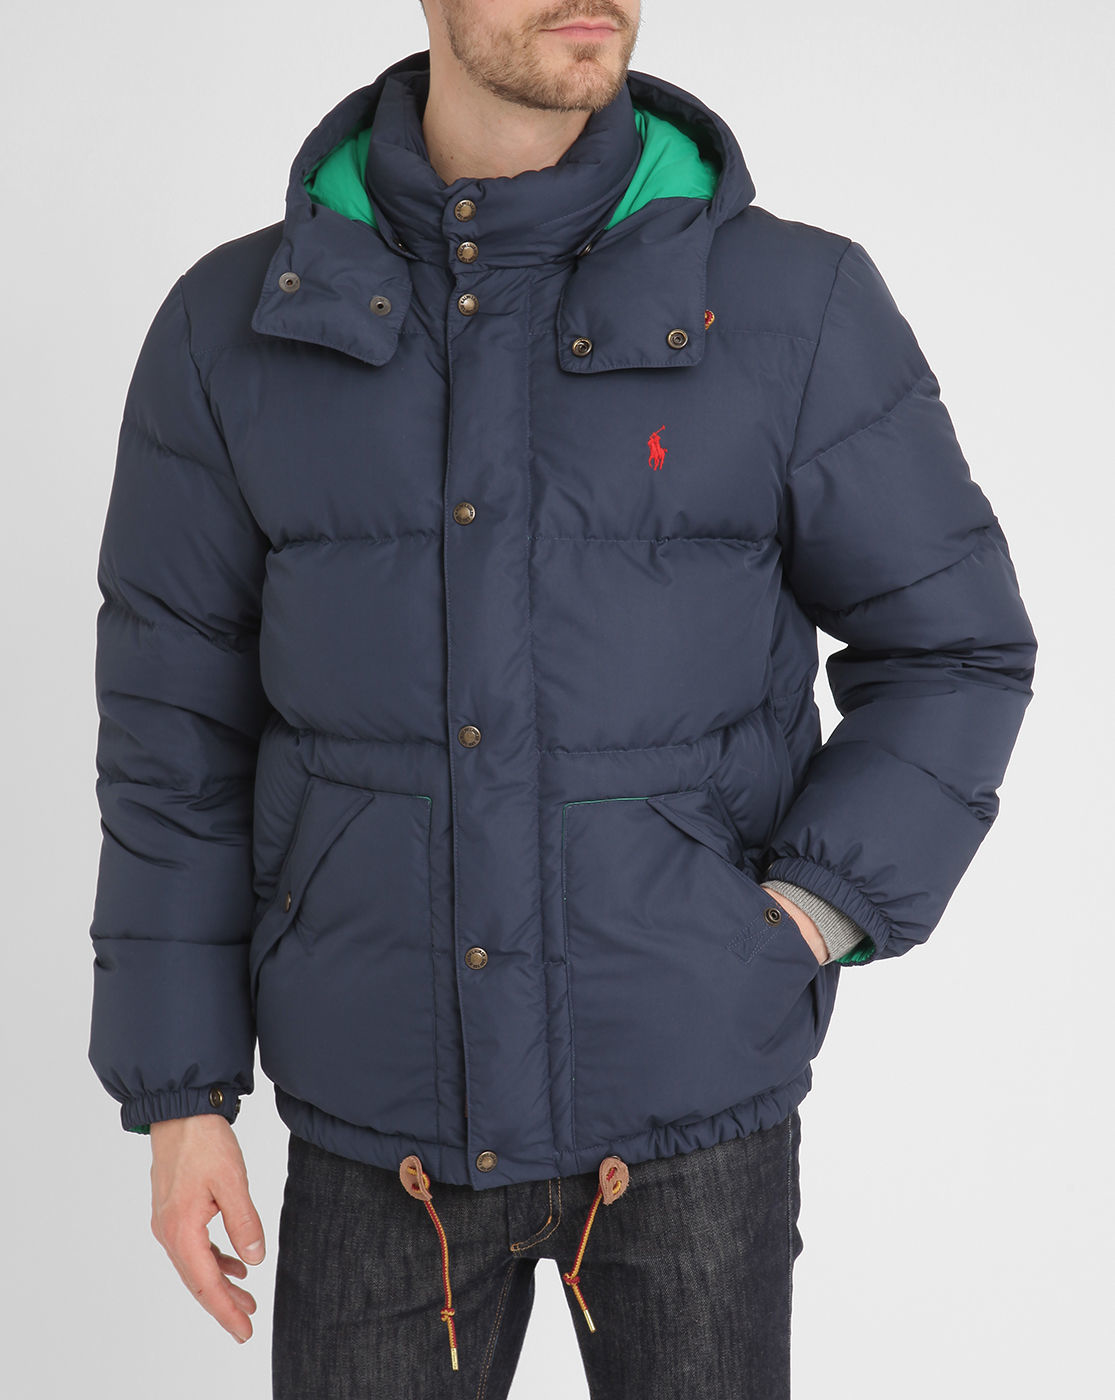 polo ralph lauren navy retro down jacket in blue for men. Black Bedroom Furniture Sets. Home Design Ideas